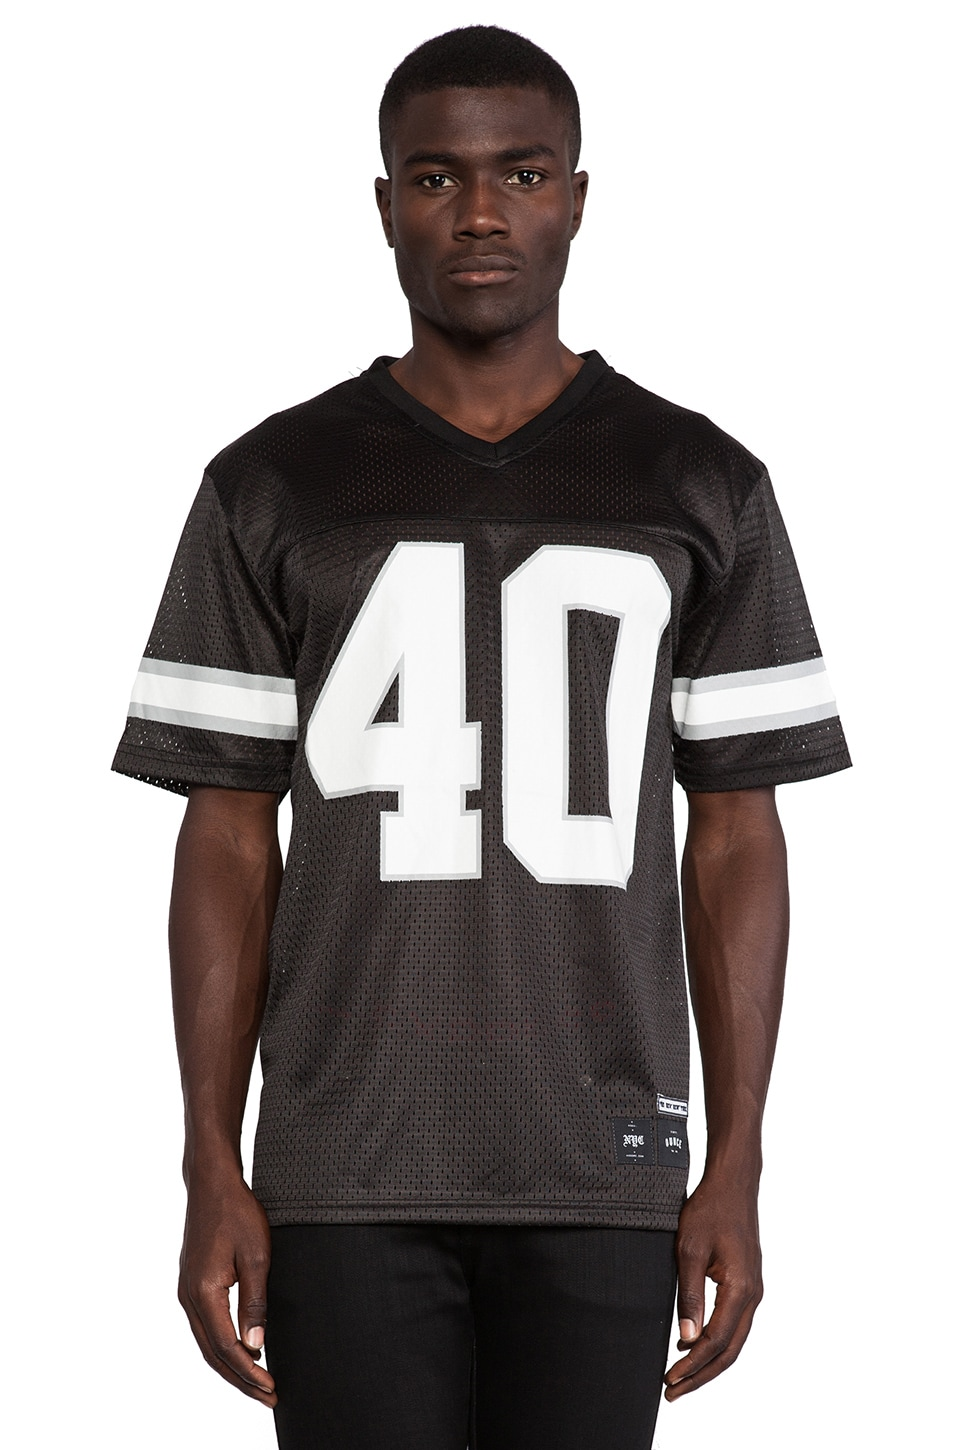 40 OZ NY 40 OZ NY Football Jersey in Black